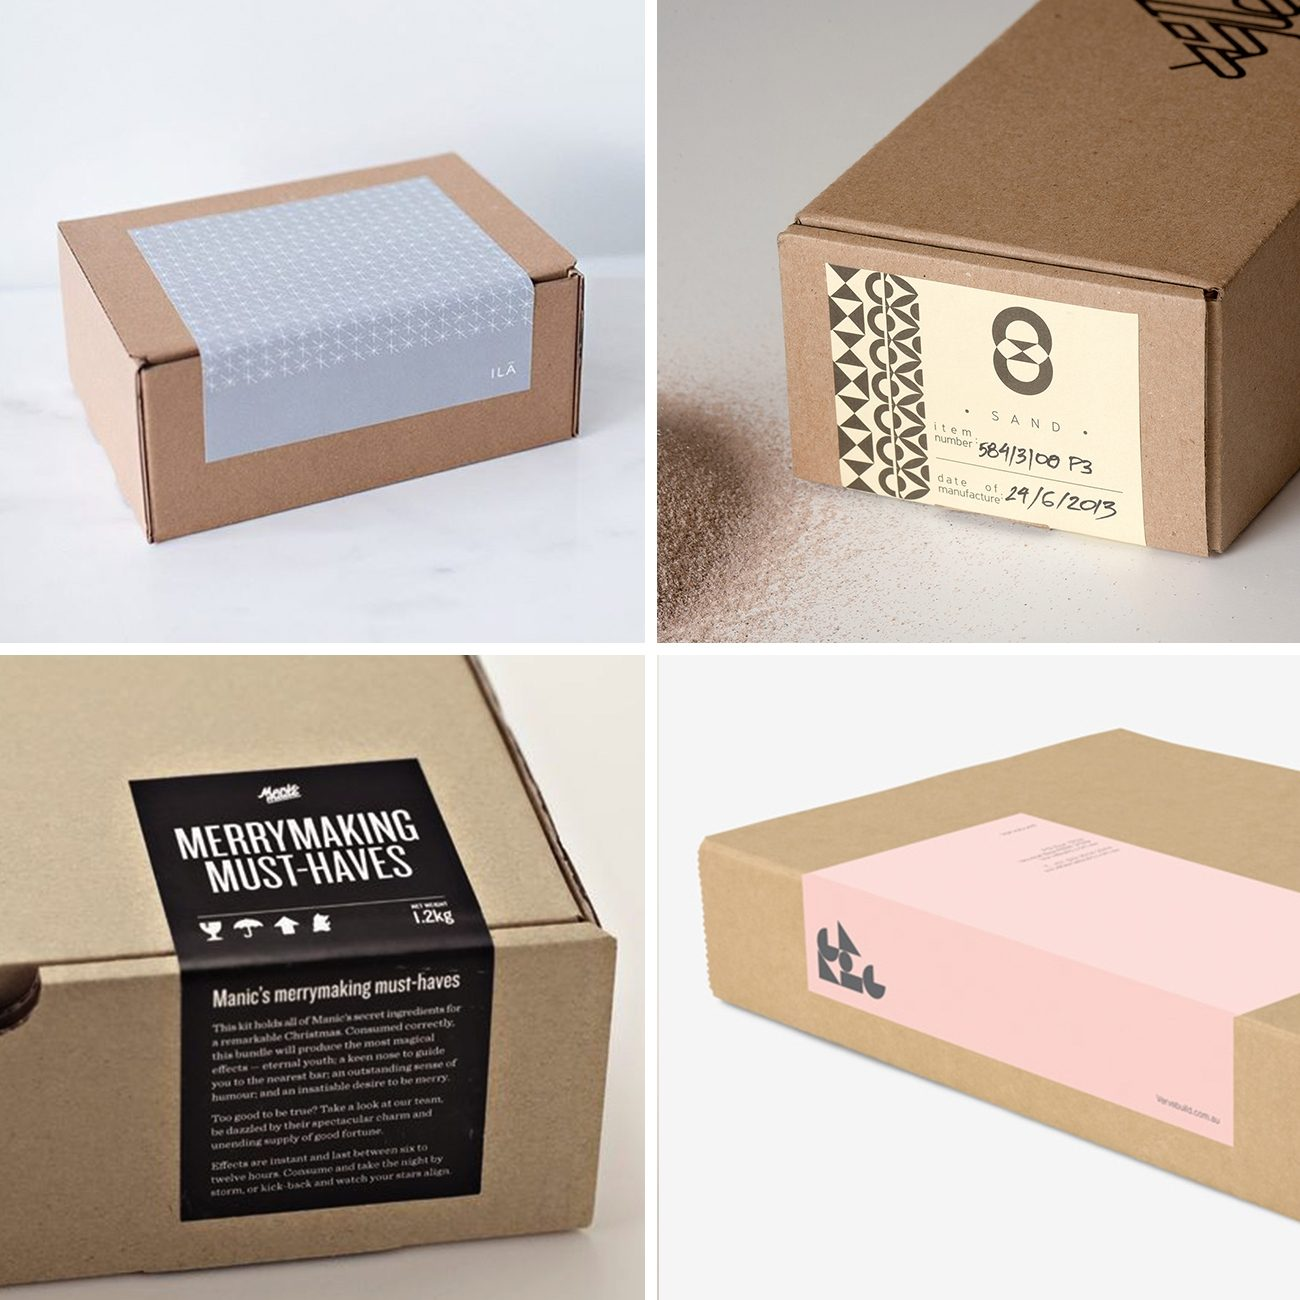 Photos via: Anagrama; Ila; Marios Georntamilis, Nikos Athanasopoulos, and Konstantina Gorgogianni, —, — 70 Ideas to Spruce Up Your Holiday Packaging Design